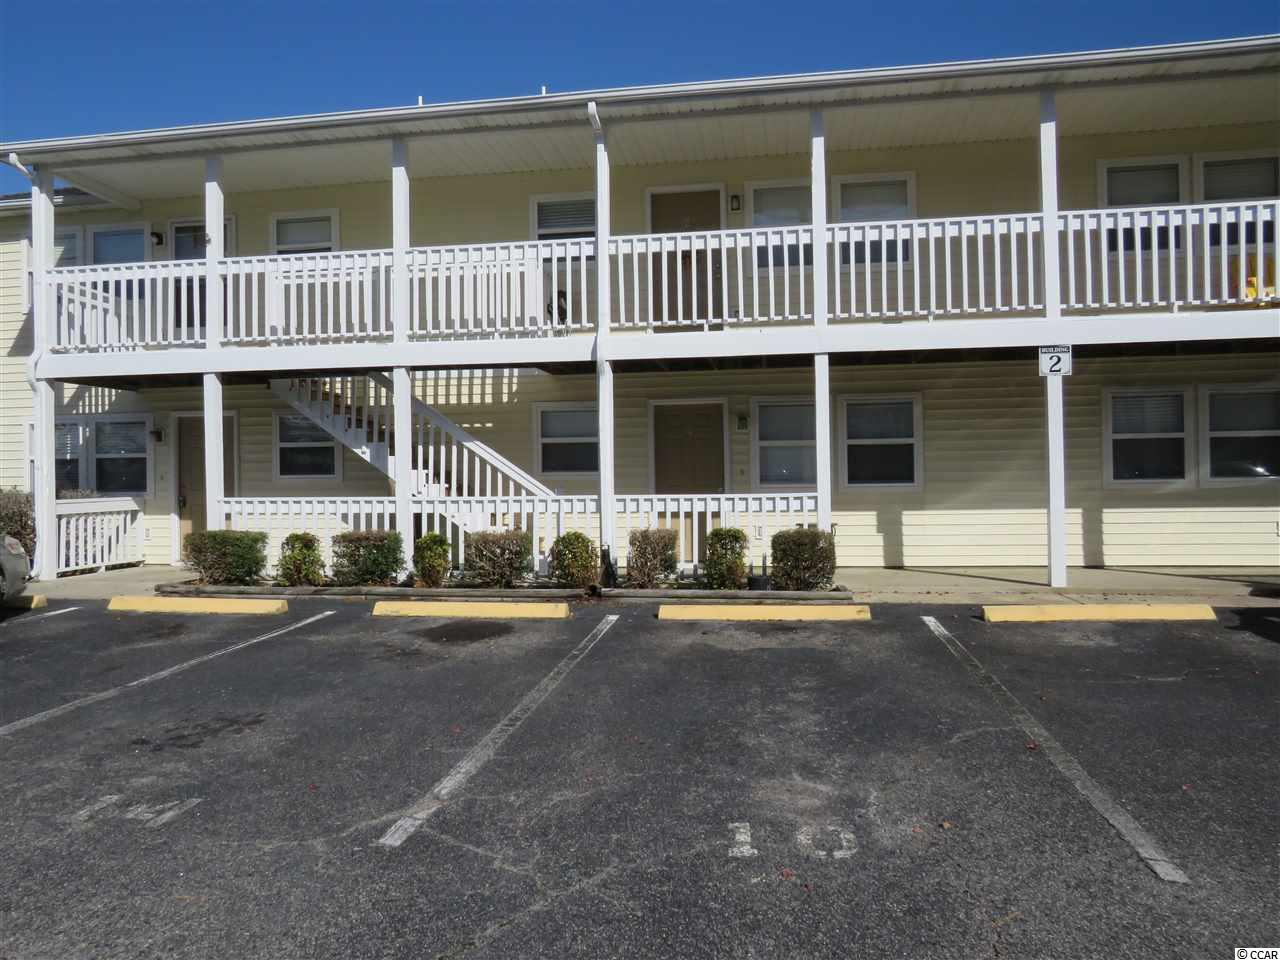 This cute, 1st floor, 2 bedroom 1 1/2 bath condo is now waiting to be called home! End unit with open concept living. Close to the pool, playground and BBQ area. Mallard Creek is convenient to schools, hospitals, shopping and much more! Just moments away from the beautiful beach and the Marina! Recent updates include new vinyl plank floors, fresh paint, and A/C unit. Don't miss out on this opportunity, call Today!  All measurements and square footage are approximate and not guaranteed. Buyer is responsible for verification.